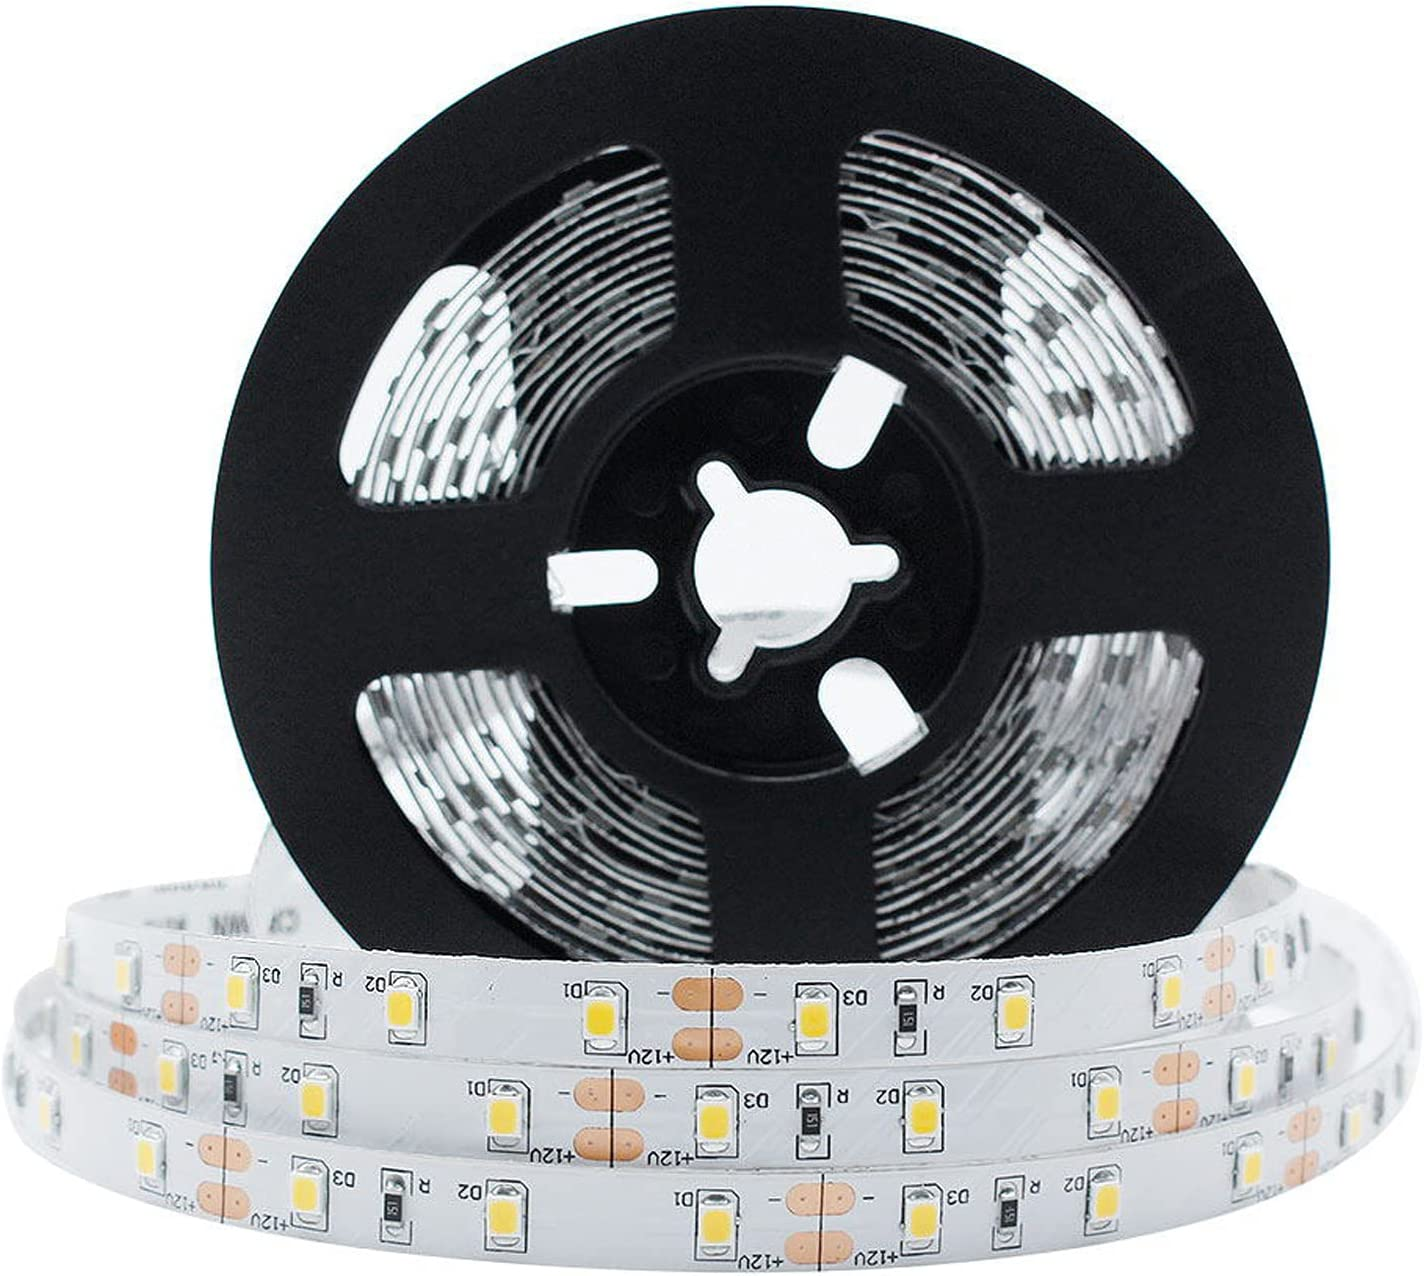 LightingWill LED Strip New products, world's highest quality popular! Lights CRI90 5M 300LEDs Ranking TOP17 16.4Ft SMD3528 Ul